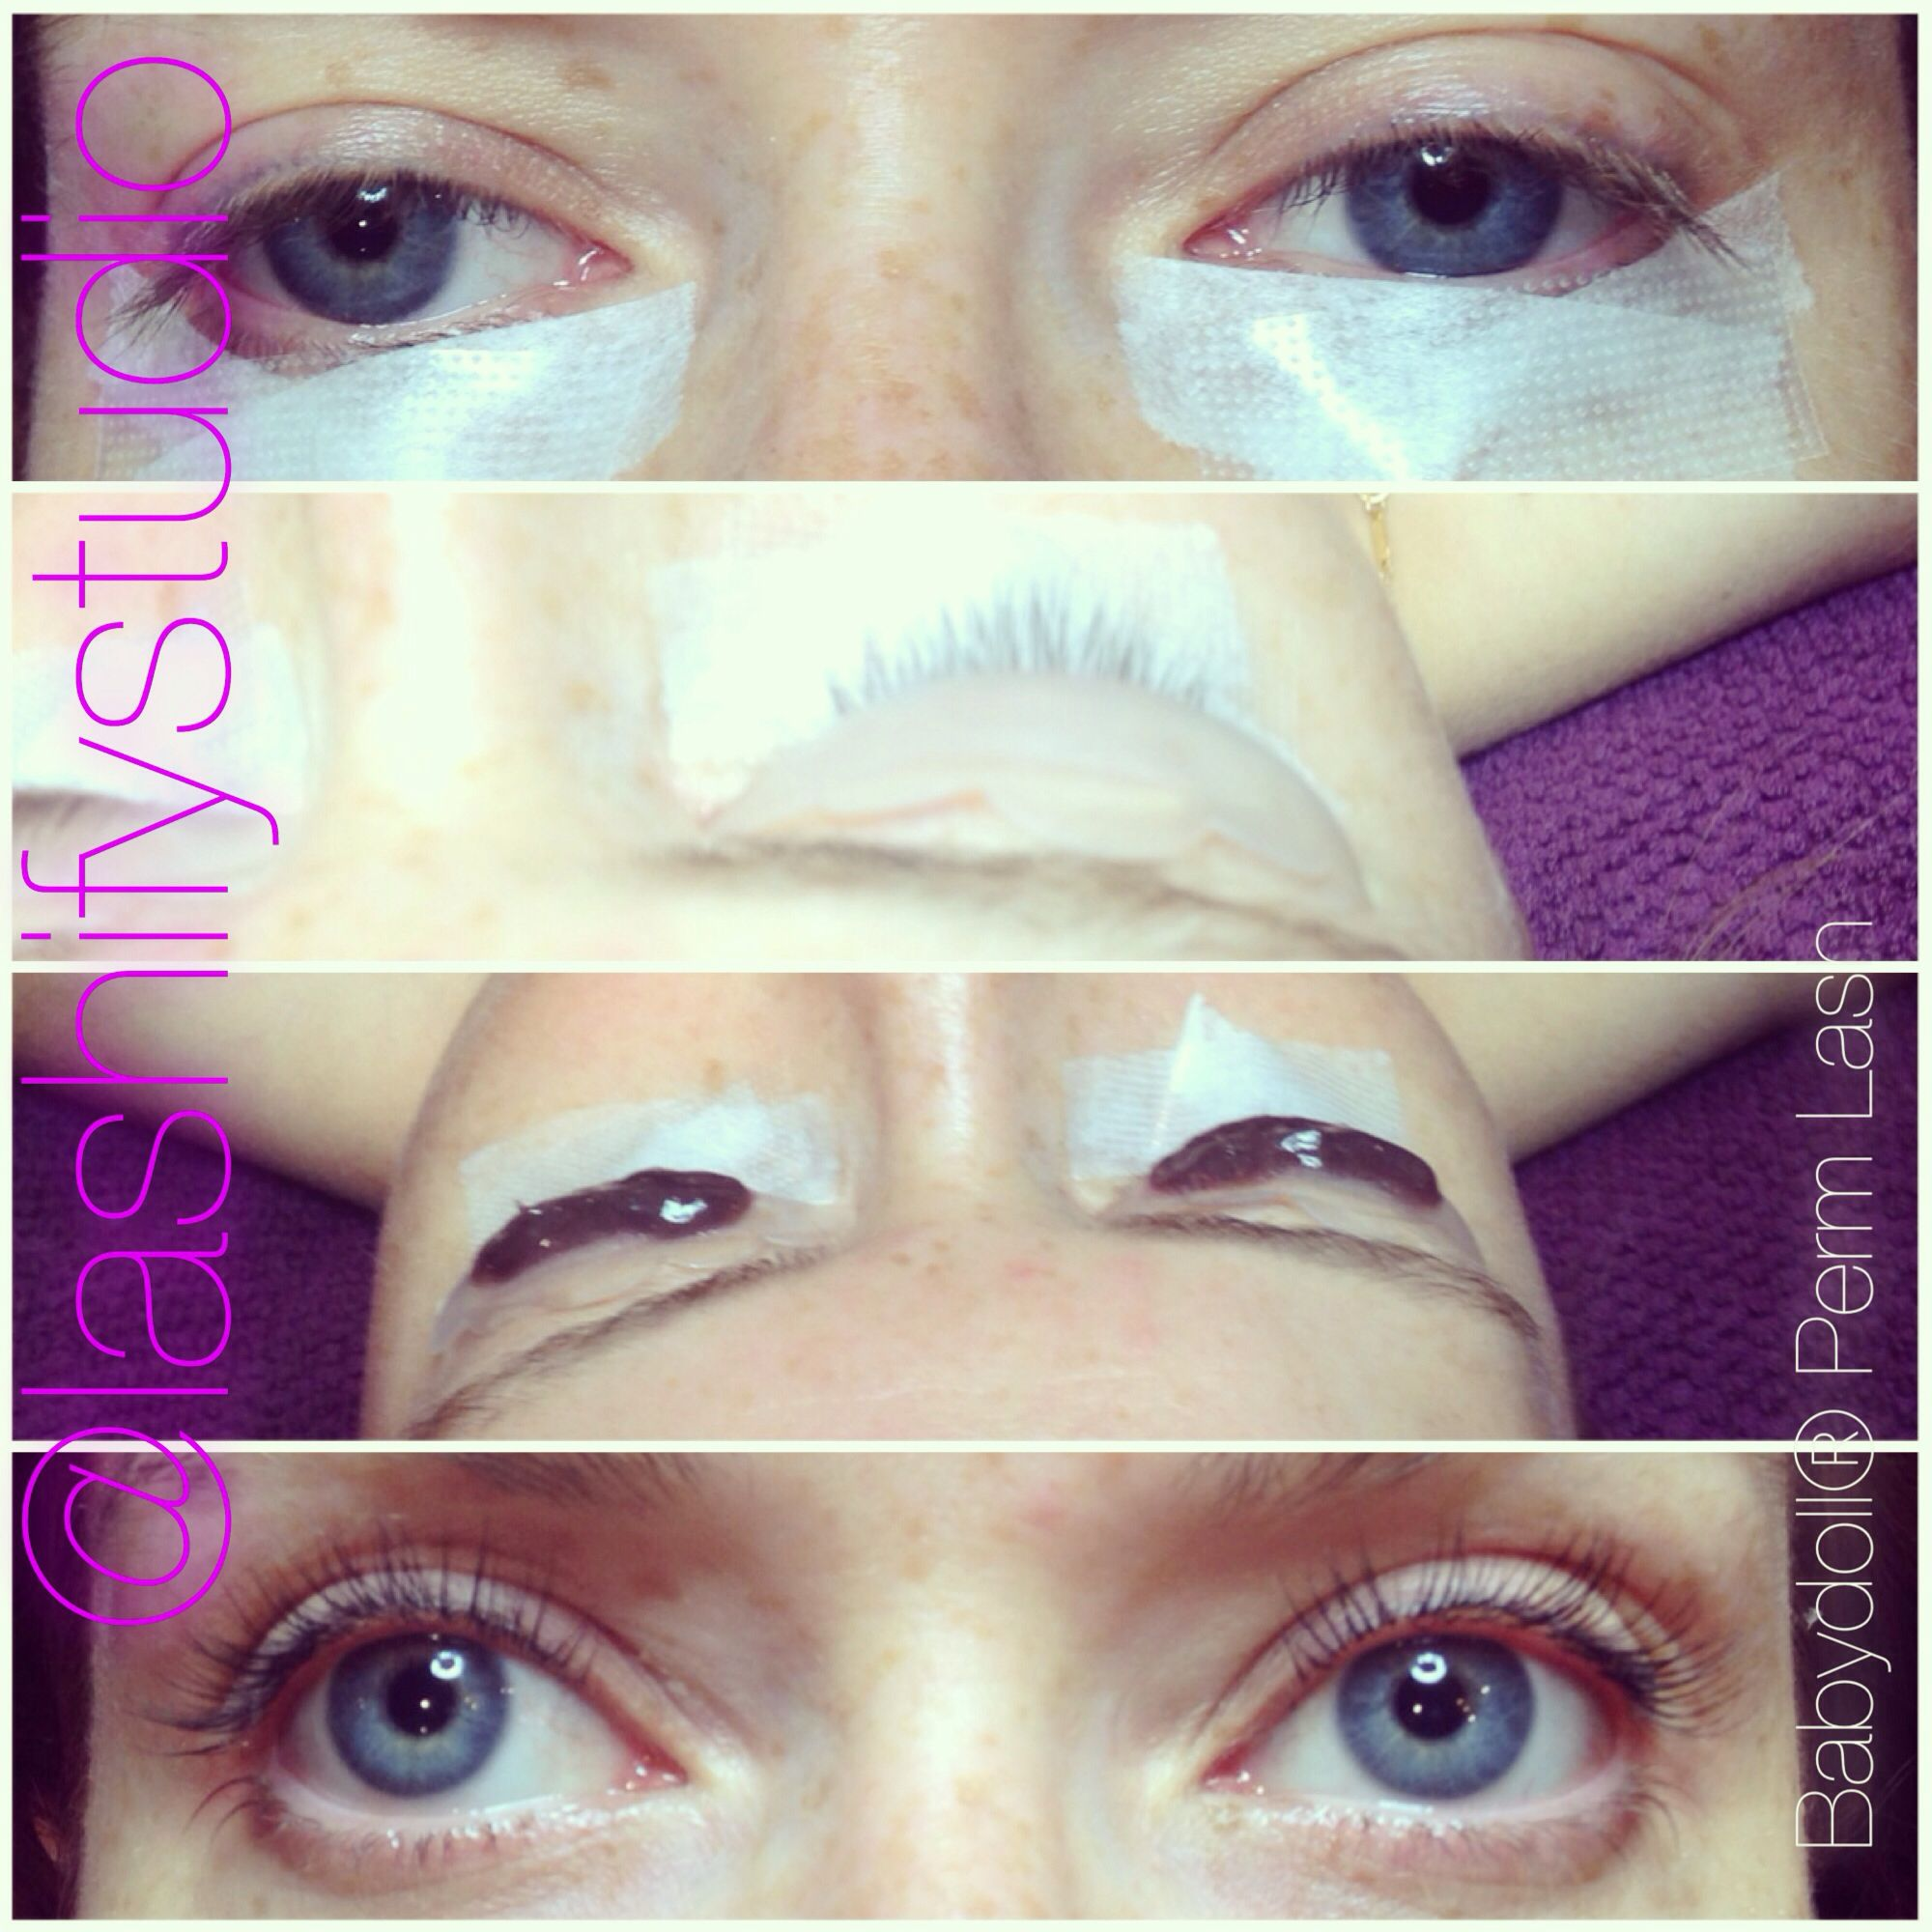 Babydoll lashes lashify studio check out the before and